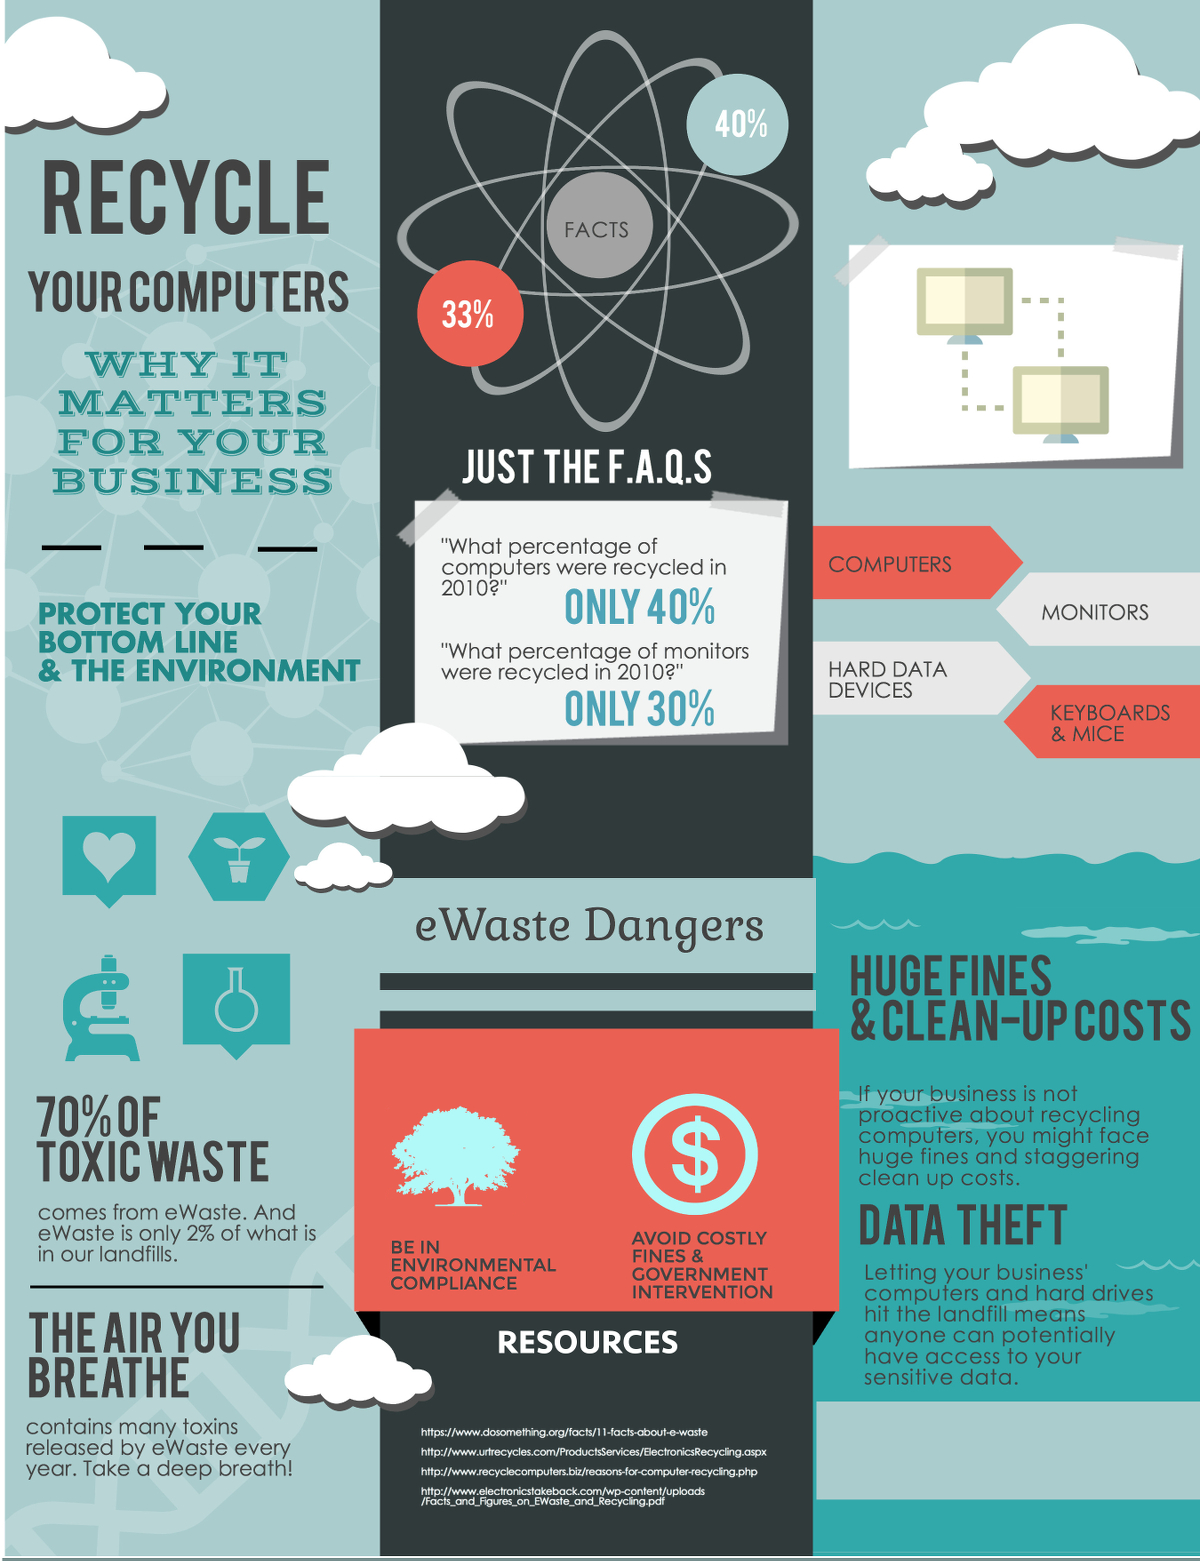 WHY YOUR BUSINESS SHOULD RECYCLE ELECTRONICS: PROTECTING THE ENVIRONMENT & YOUR BOTTOMLINE - PROTEK RECYCLING